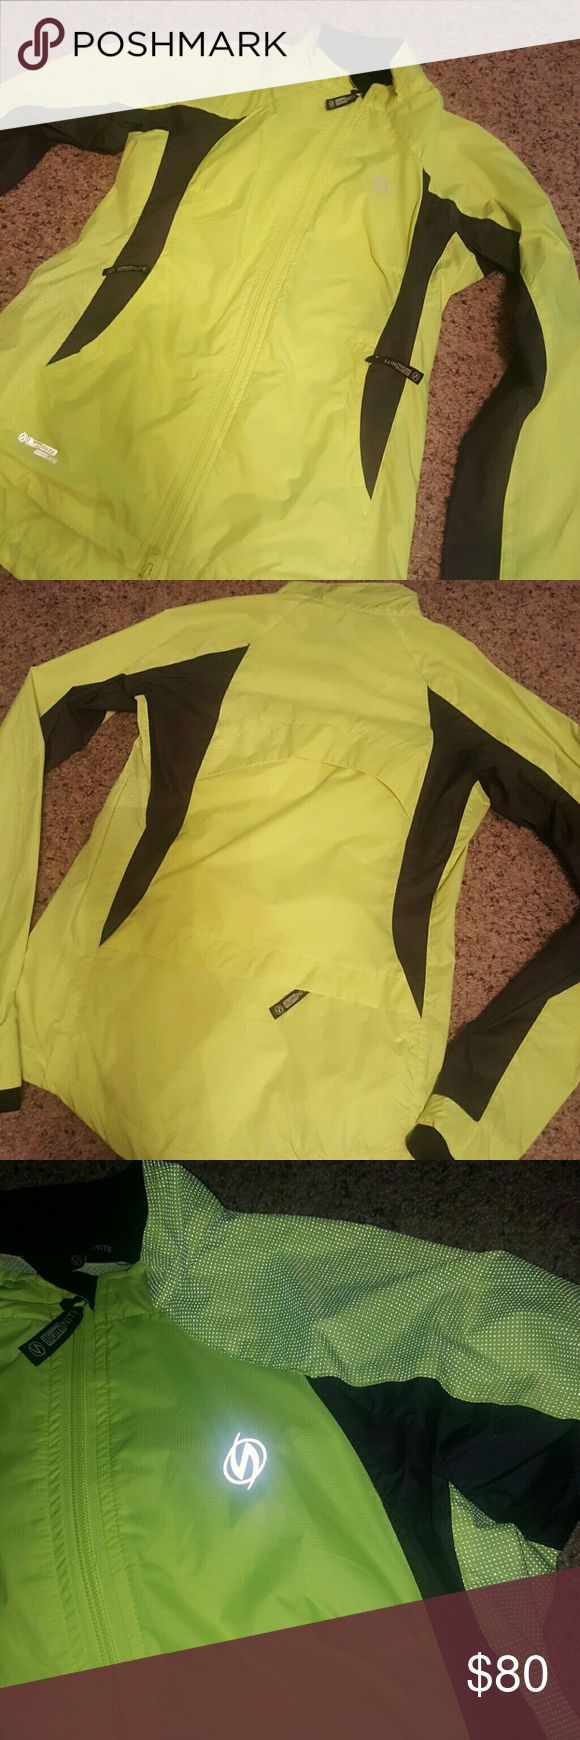 Women's illuminite reflective running jacket Women's running jacket, reflective and water resistant. Perfect for cold weather! Never worn, brand new. illuminite ILLUMINITE  Jackets & Coats Utility Jackets